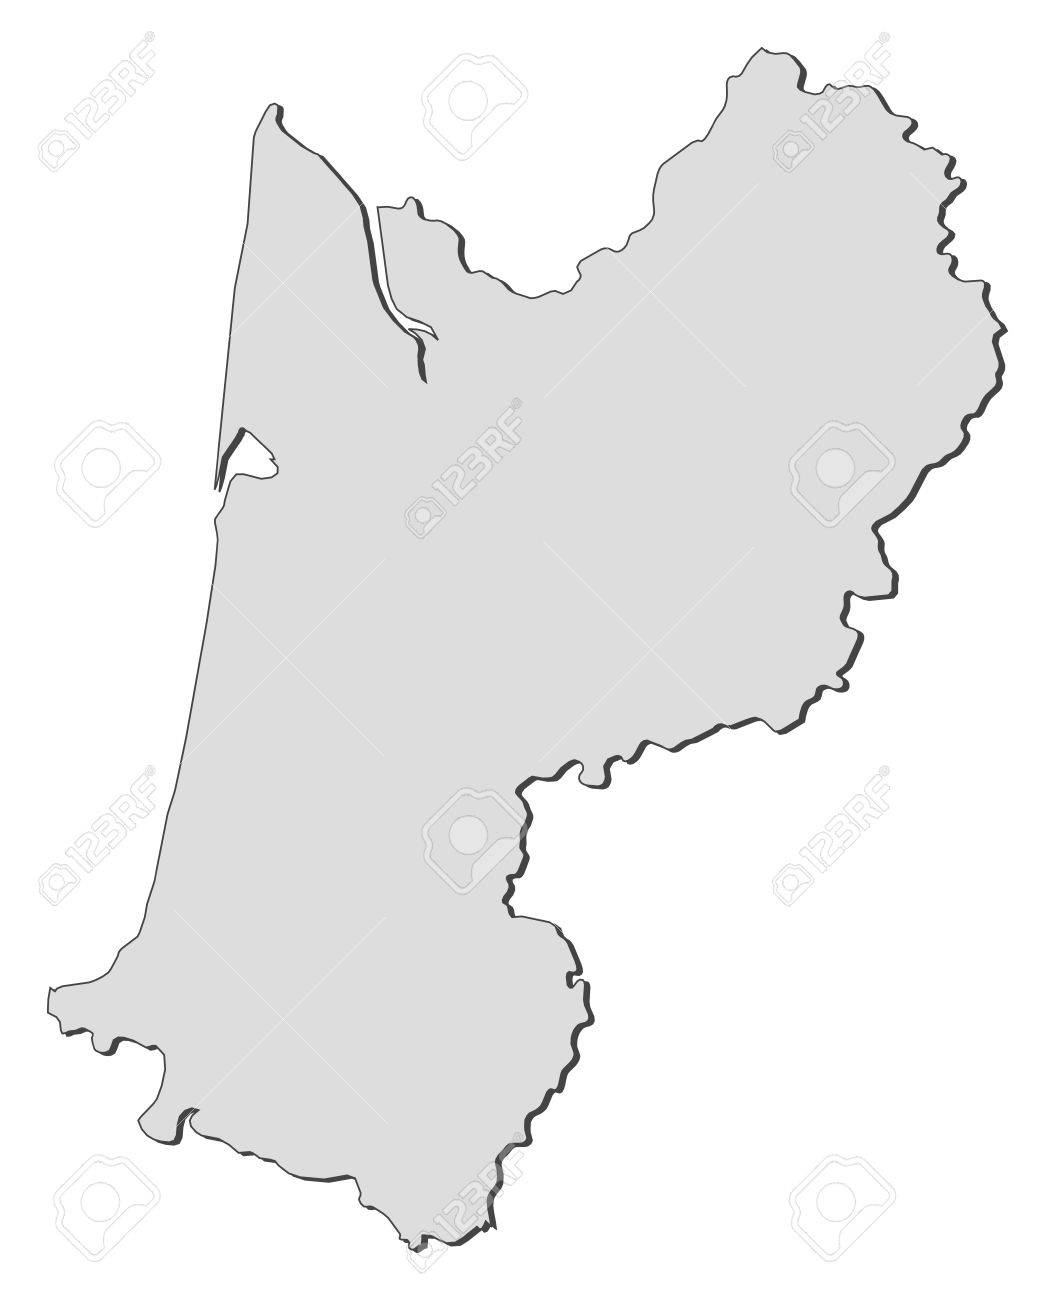 Map Of Aquitaine A Region Of France Royalty Free Cliparts Vectors